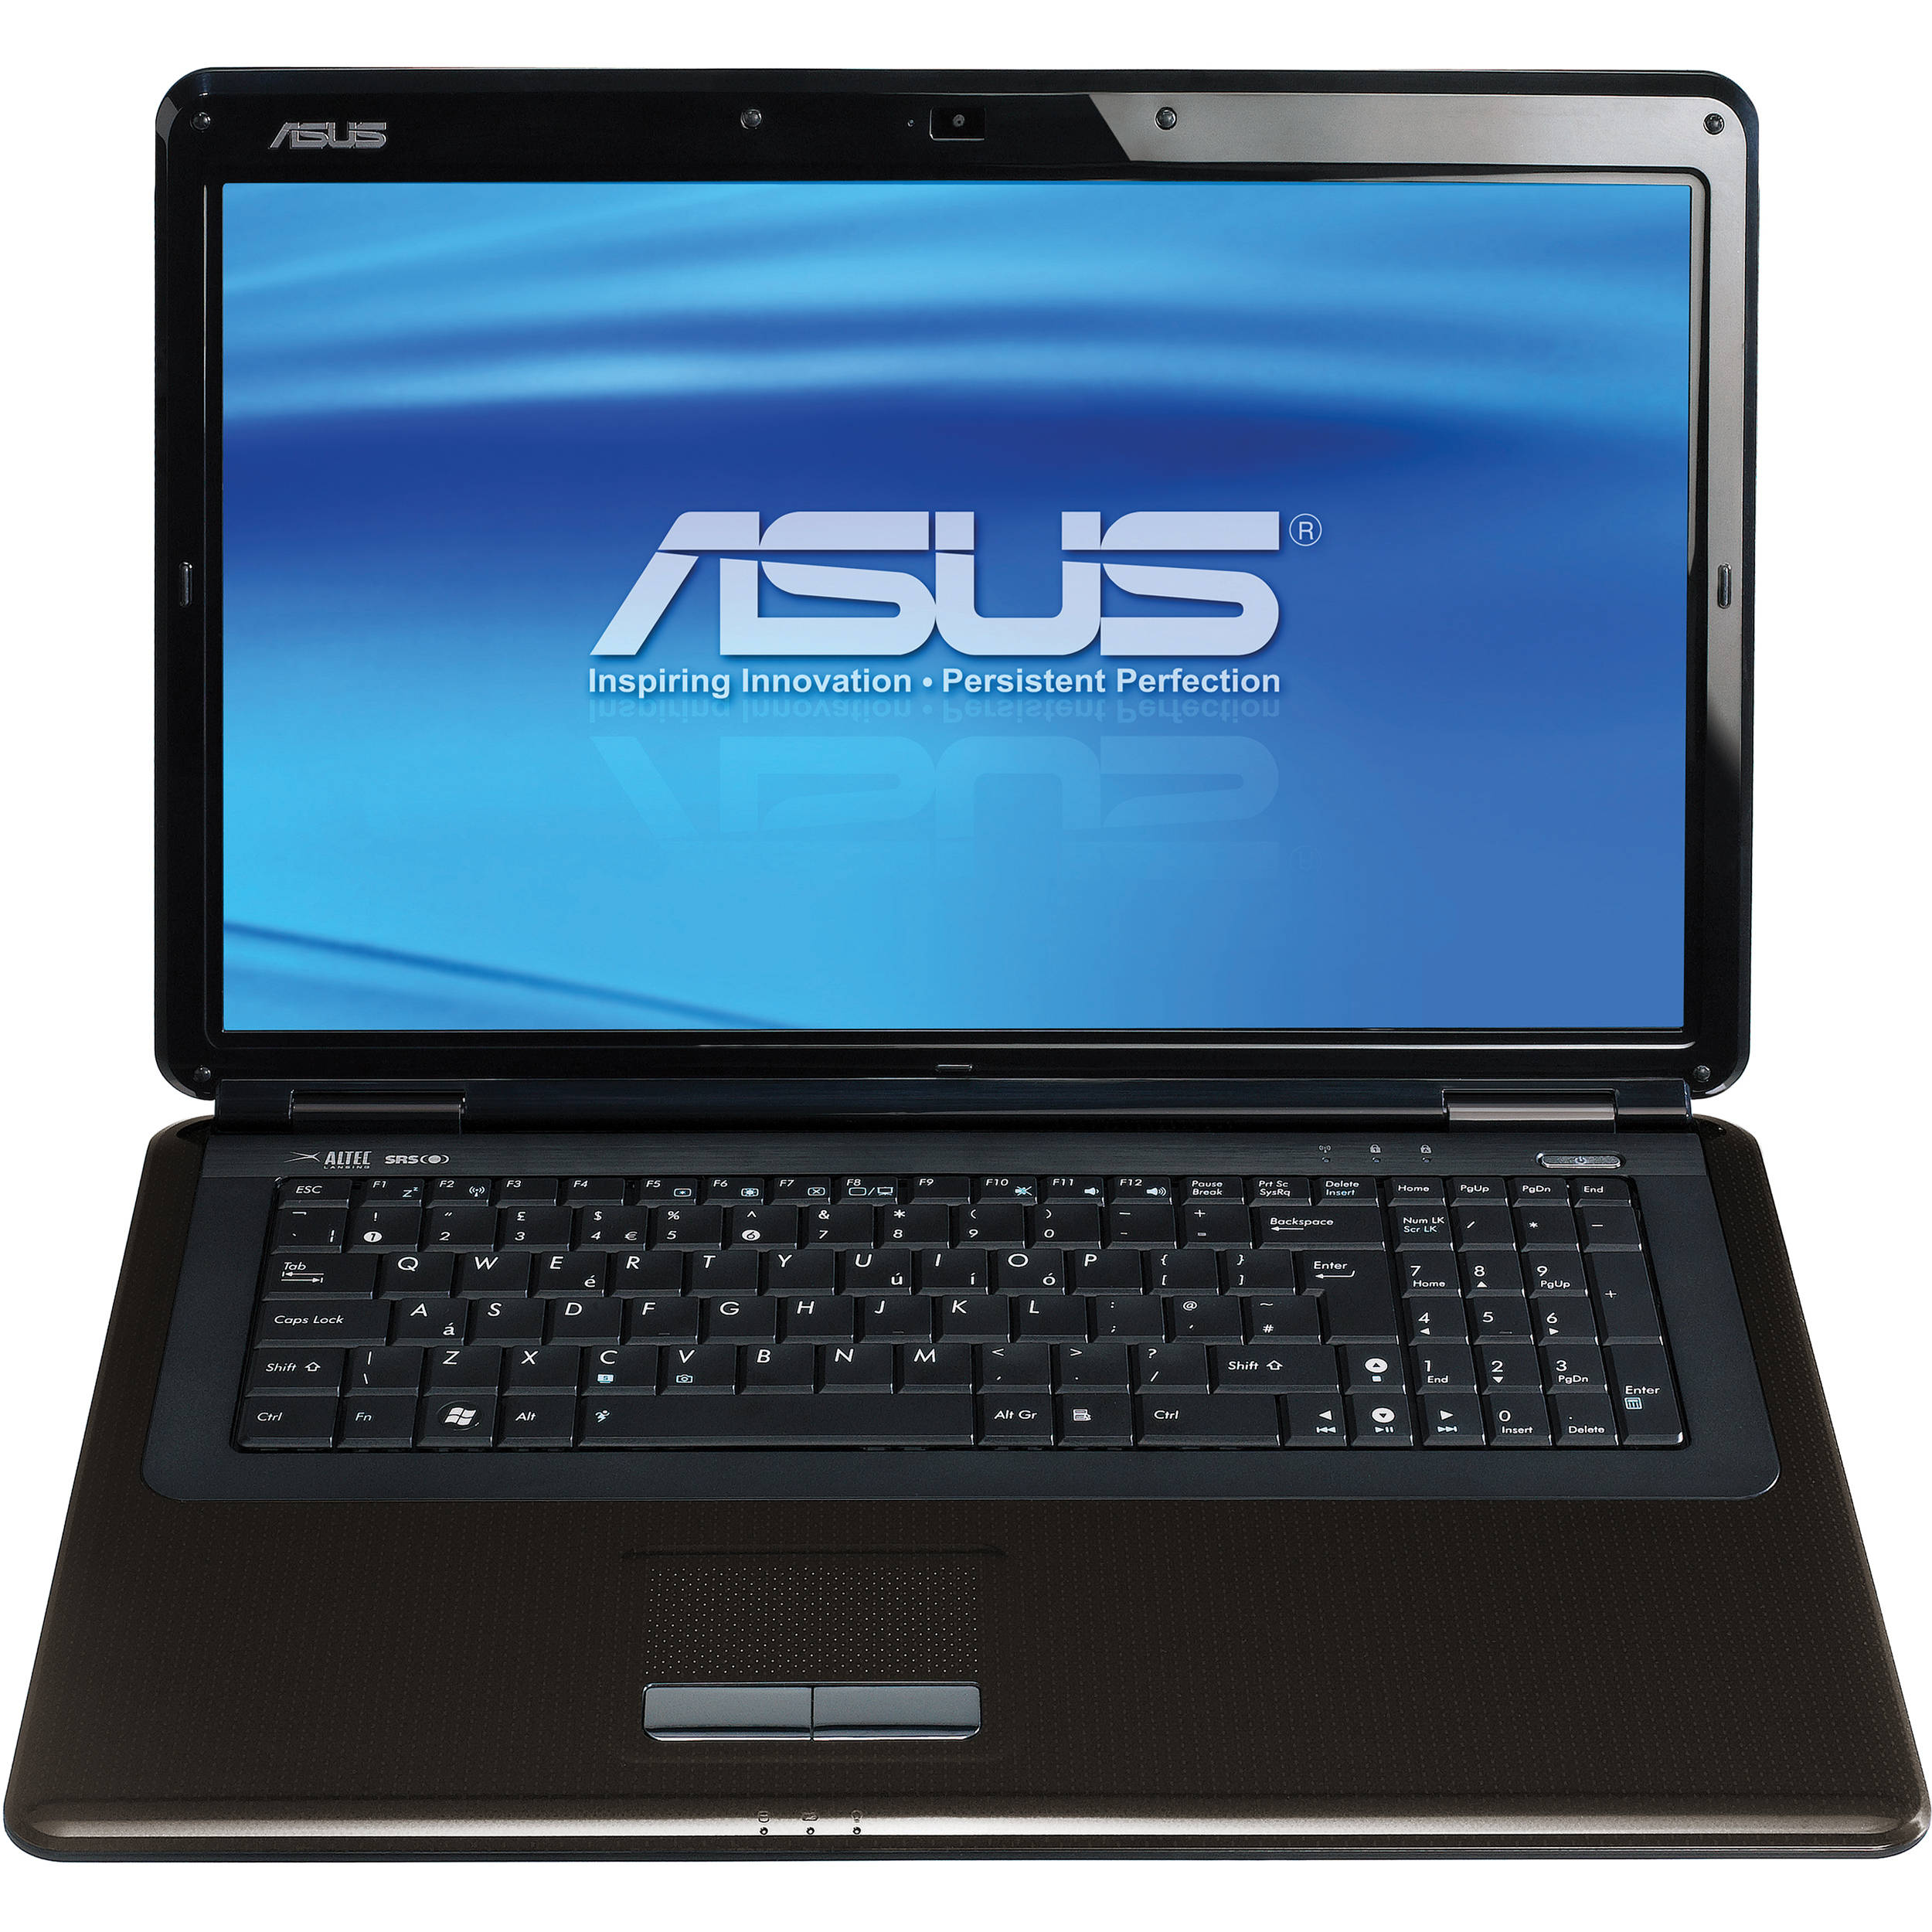 ASUS K70IJ ATK MEDIA WINDOWS VISTA DRIVER